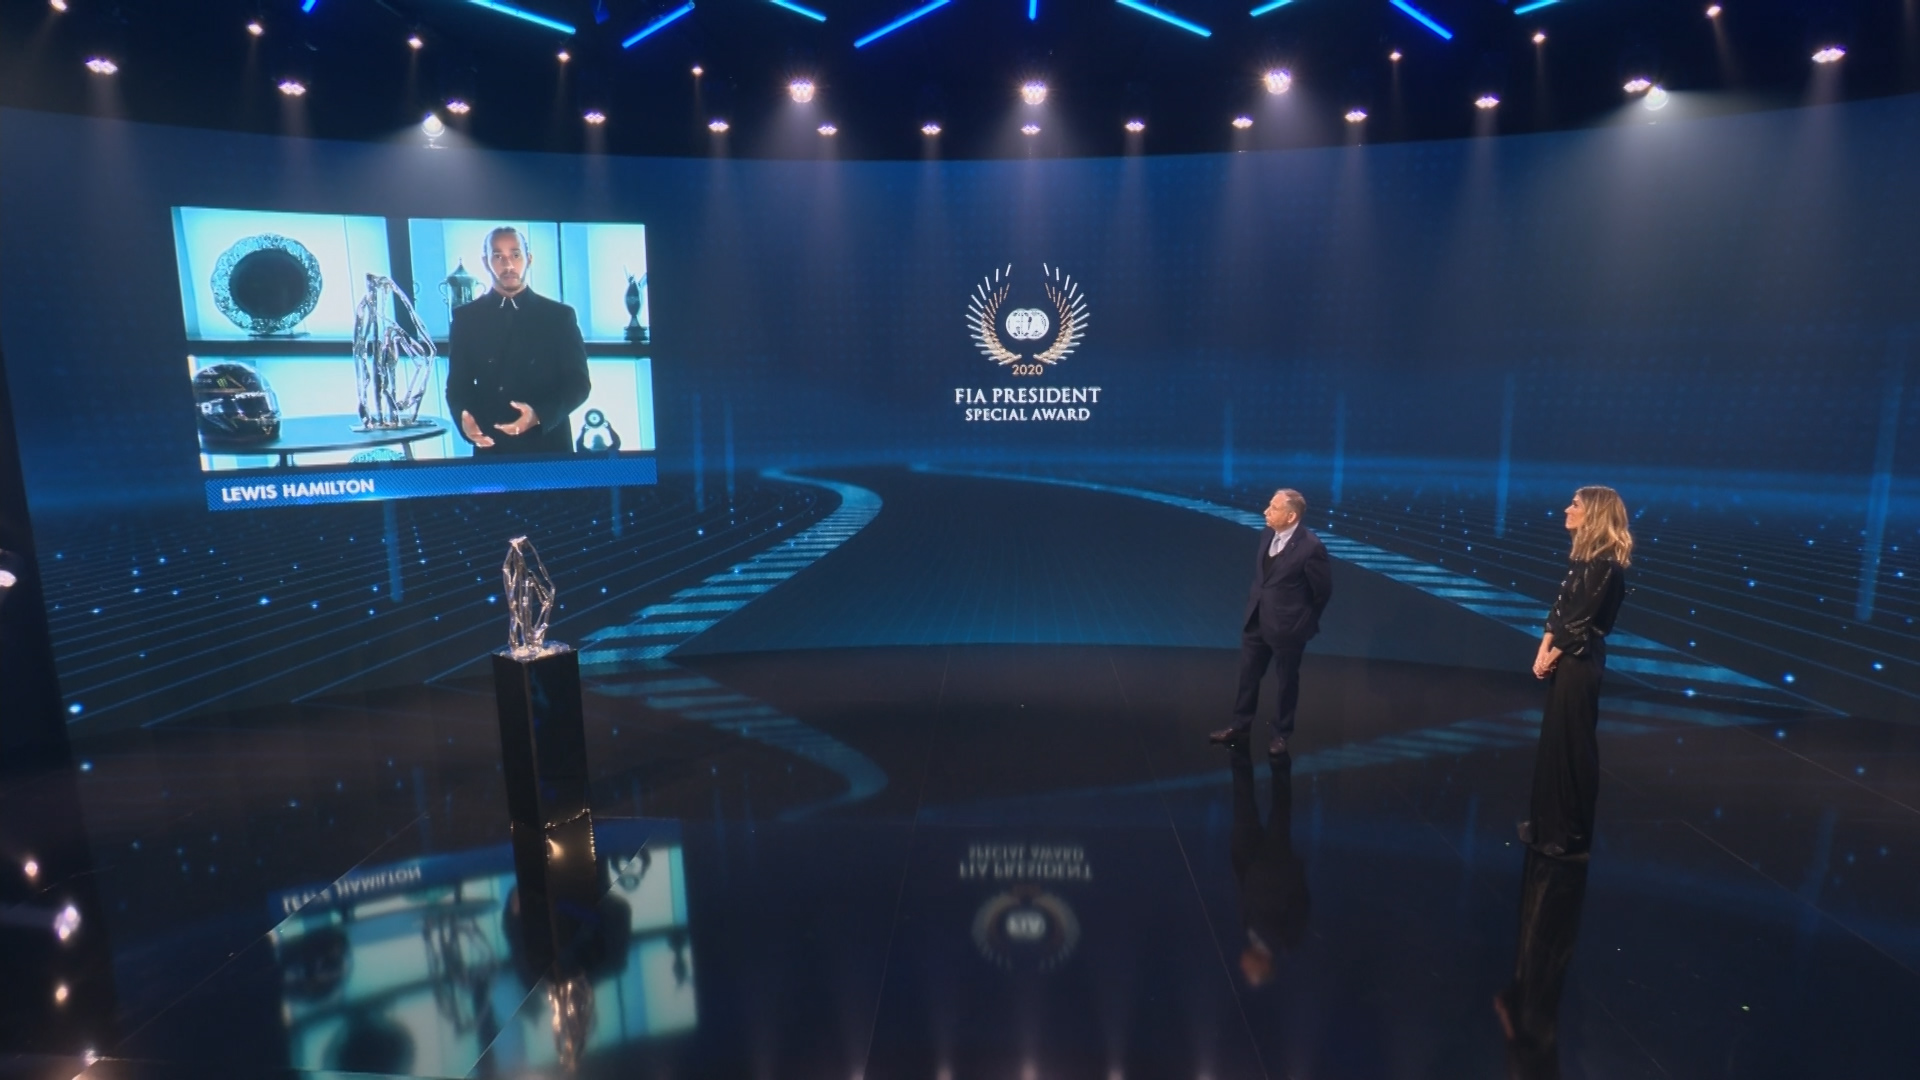 WATCH: Hamilton and Mercedes officially crowned F1 world champions for 2020 - Formula 1 RSS UK